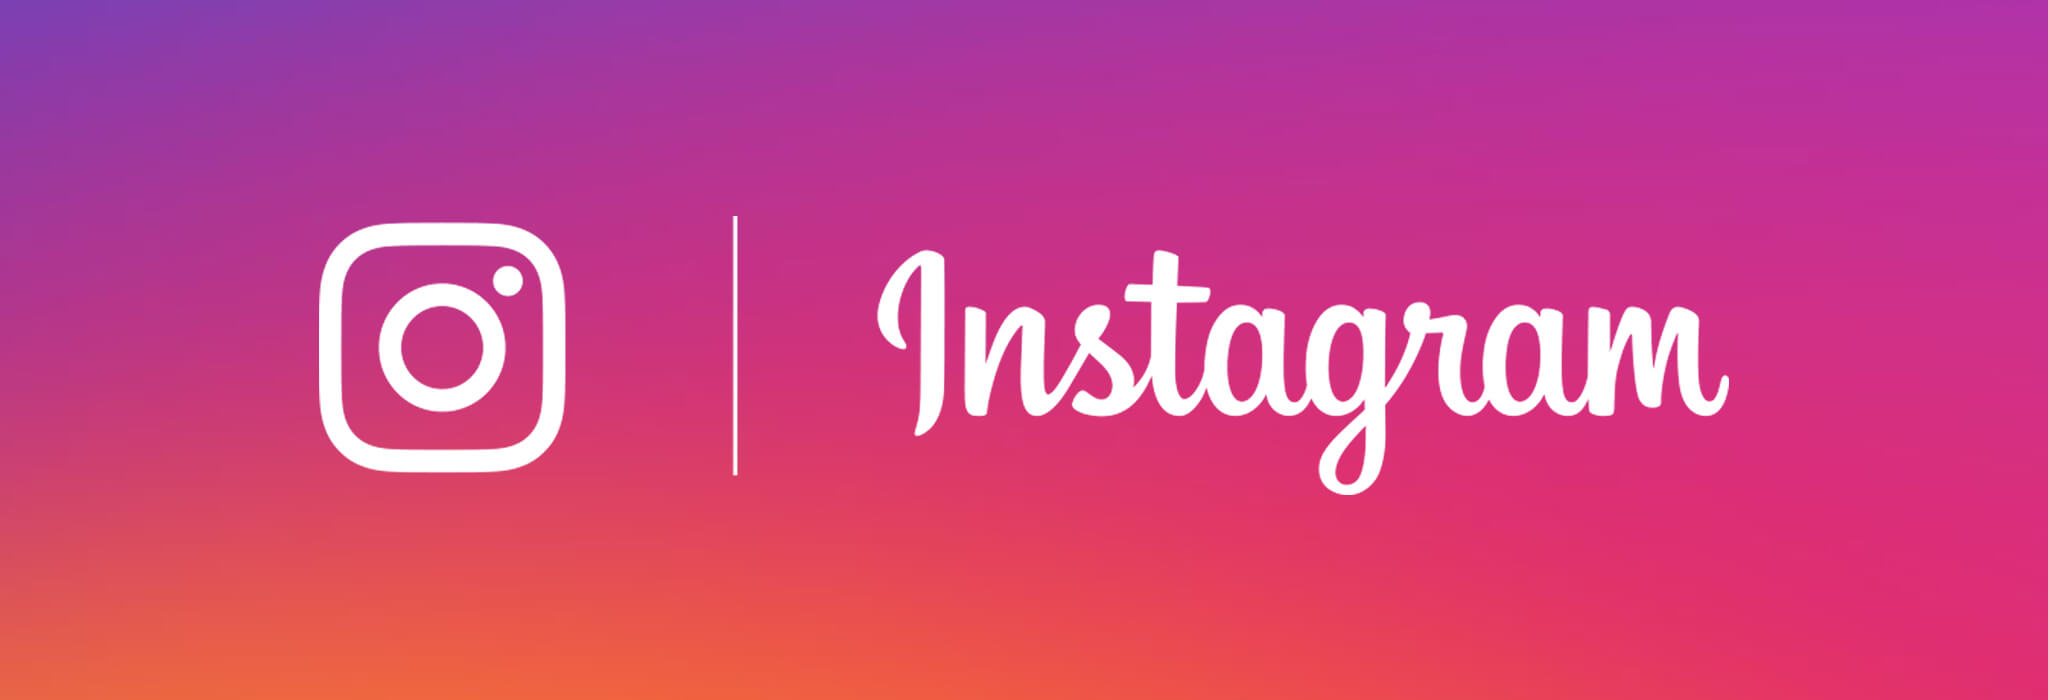 Het nieuwe Instagram logo, love it or hate it – Femke blogt